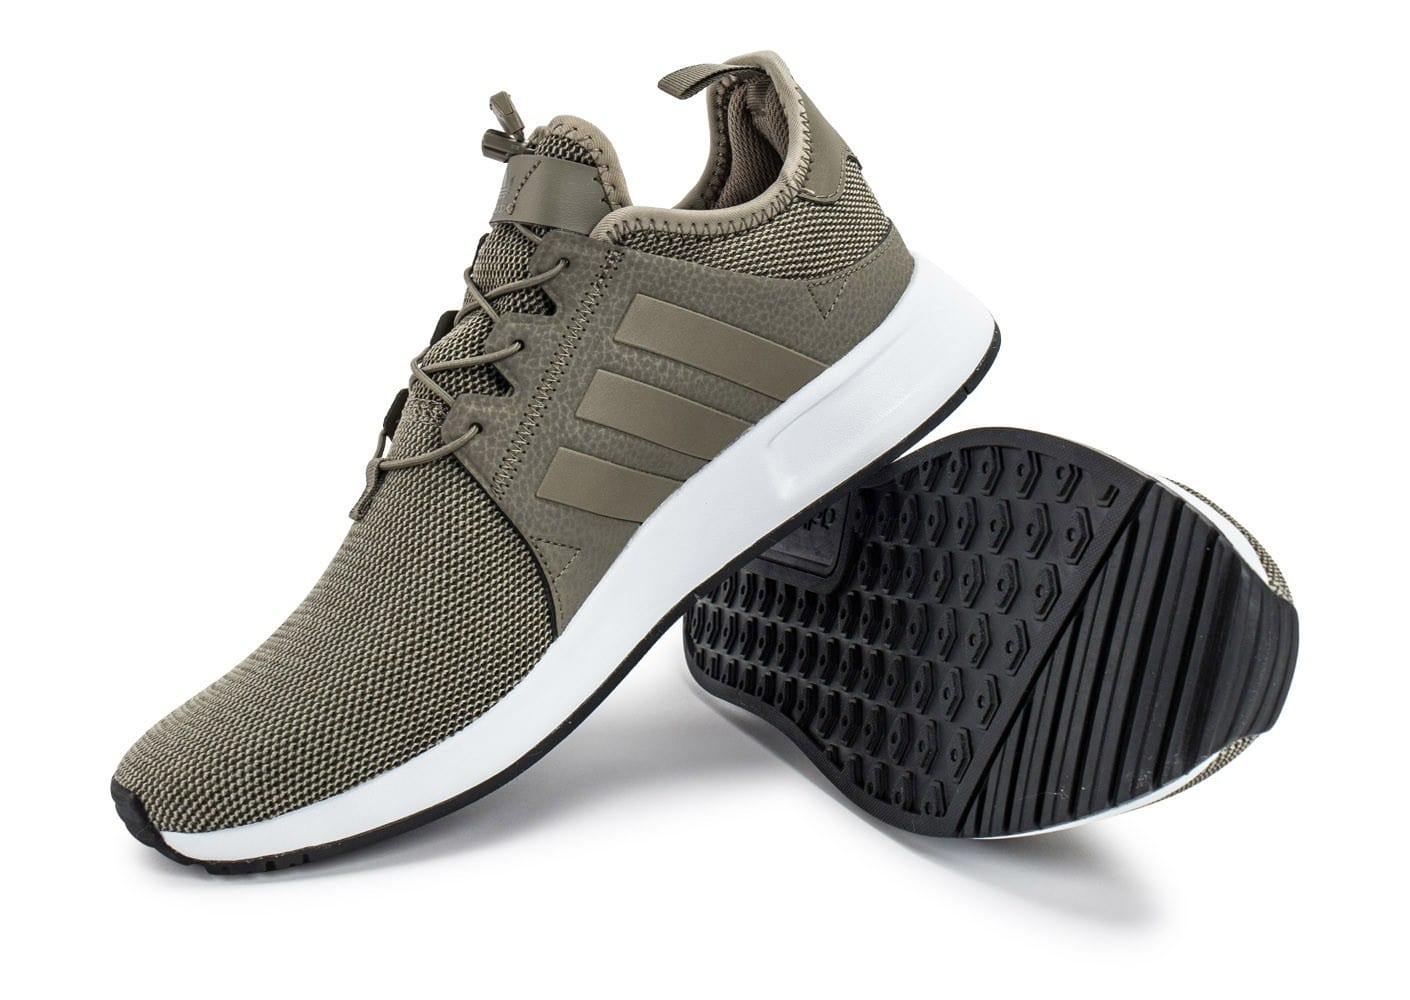 chaussures adidas x trace,chaussures adidas x plr trace kaki vue details